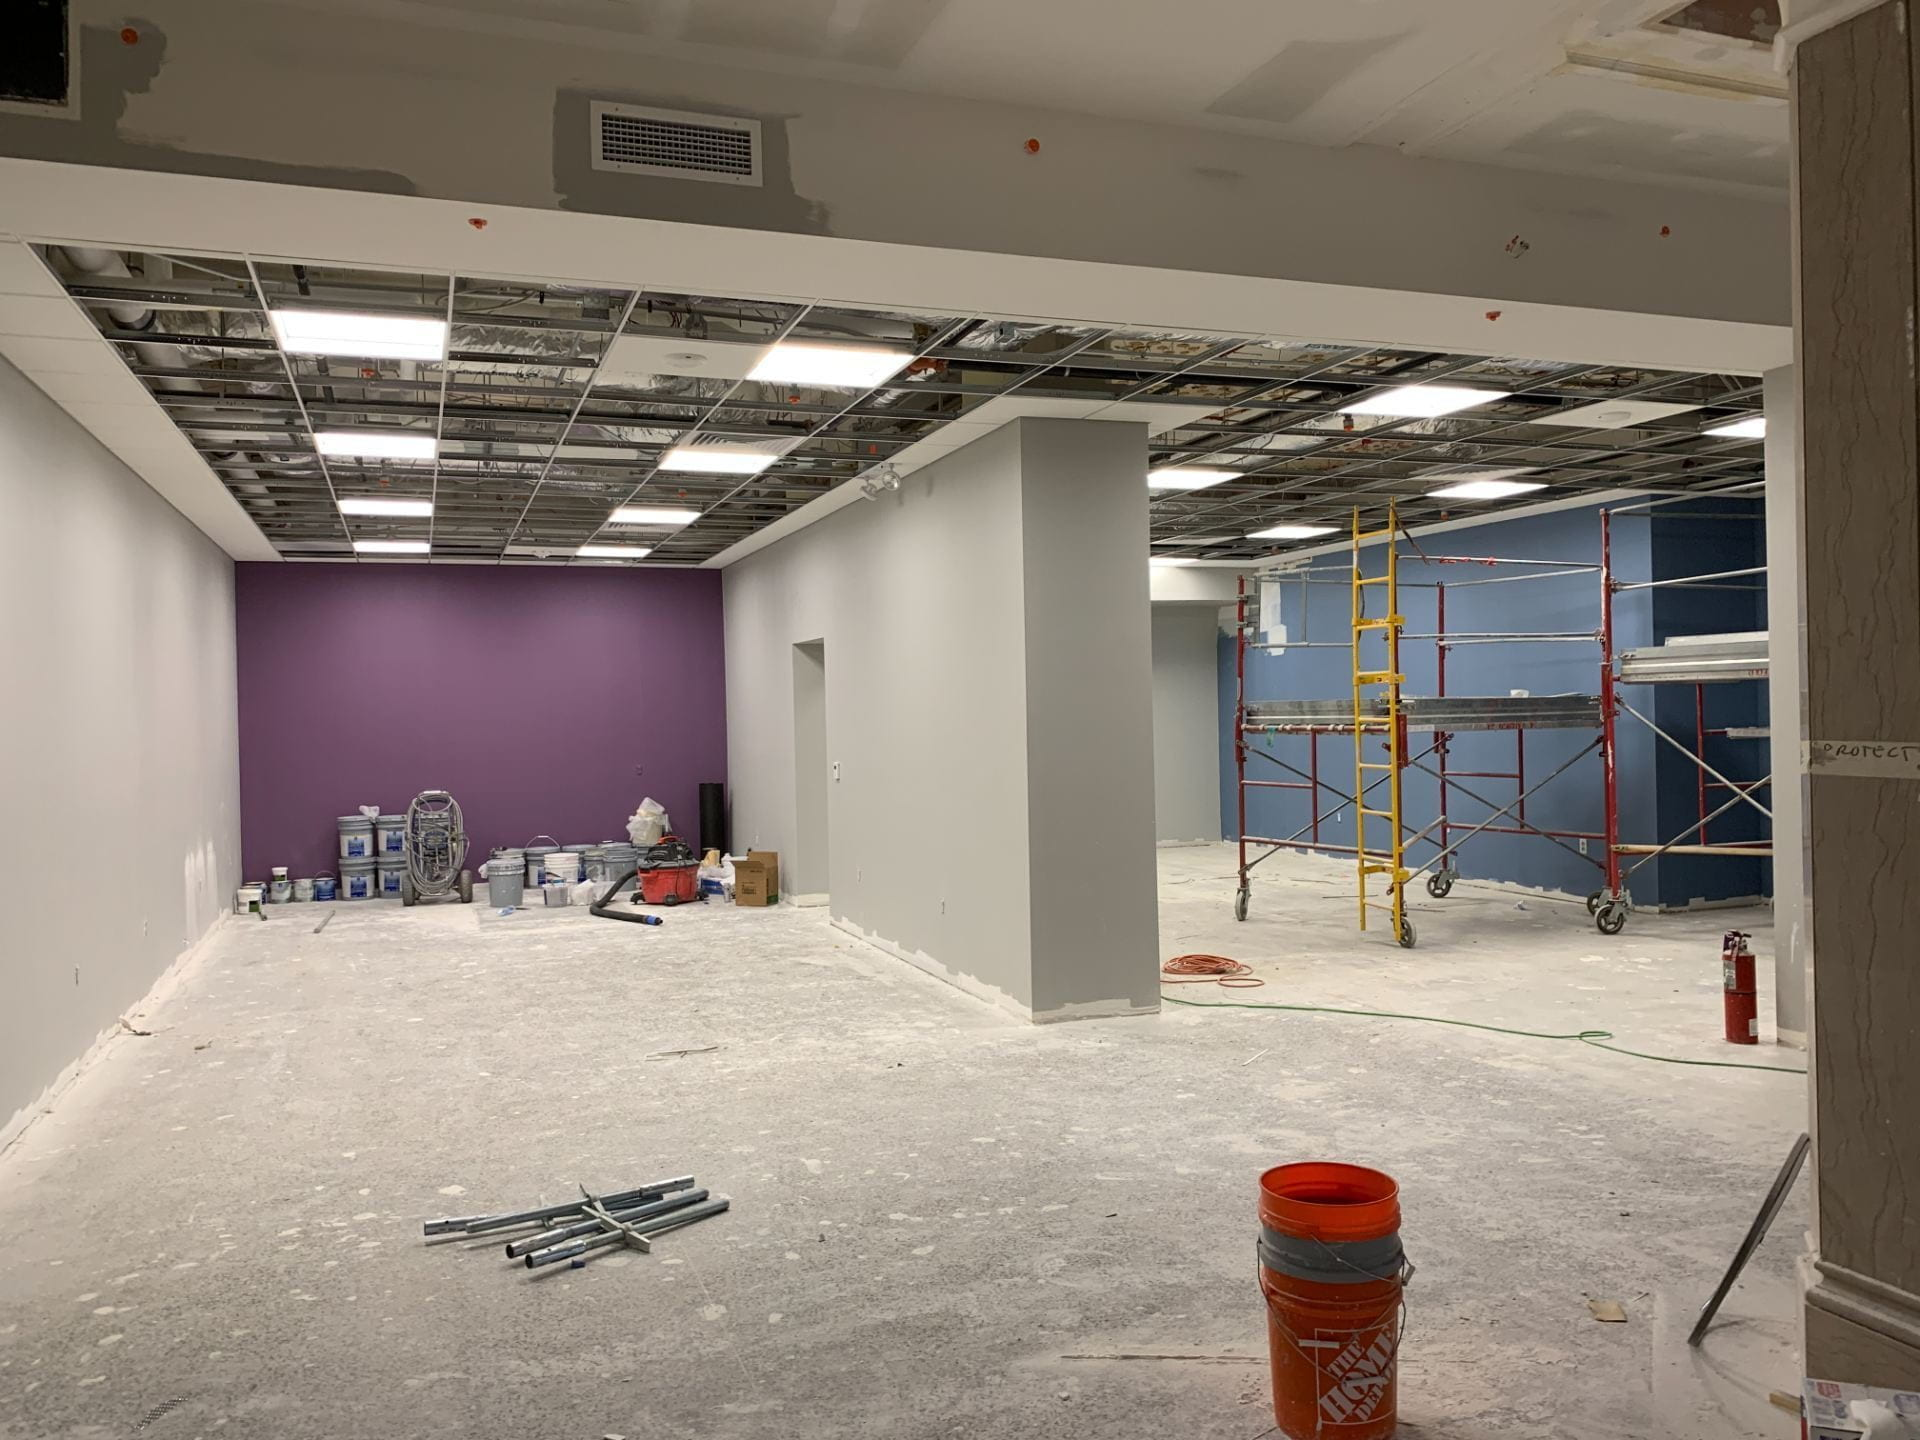 The graduate study rooms on the third floor are under construction.